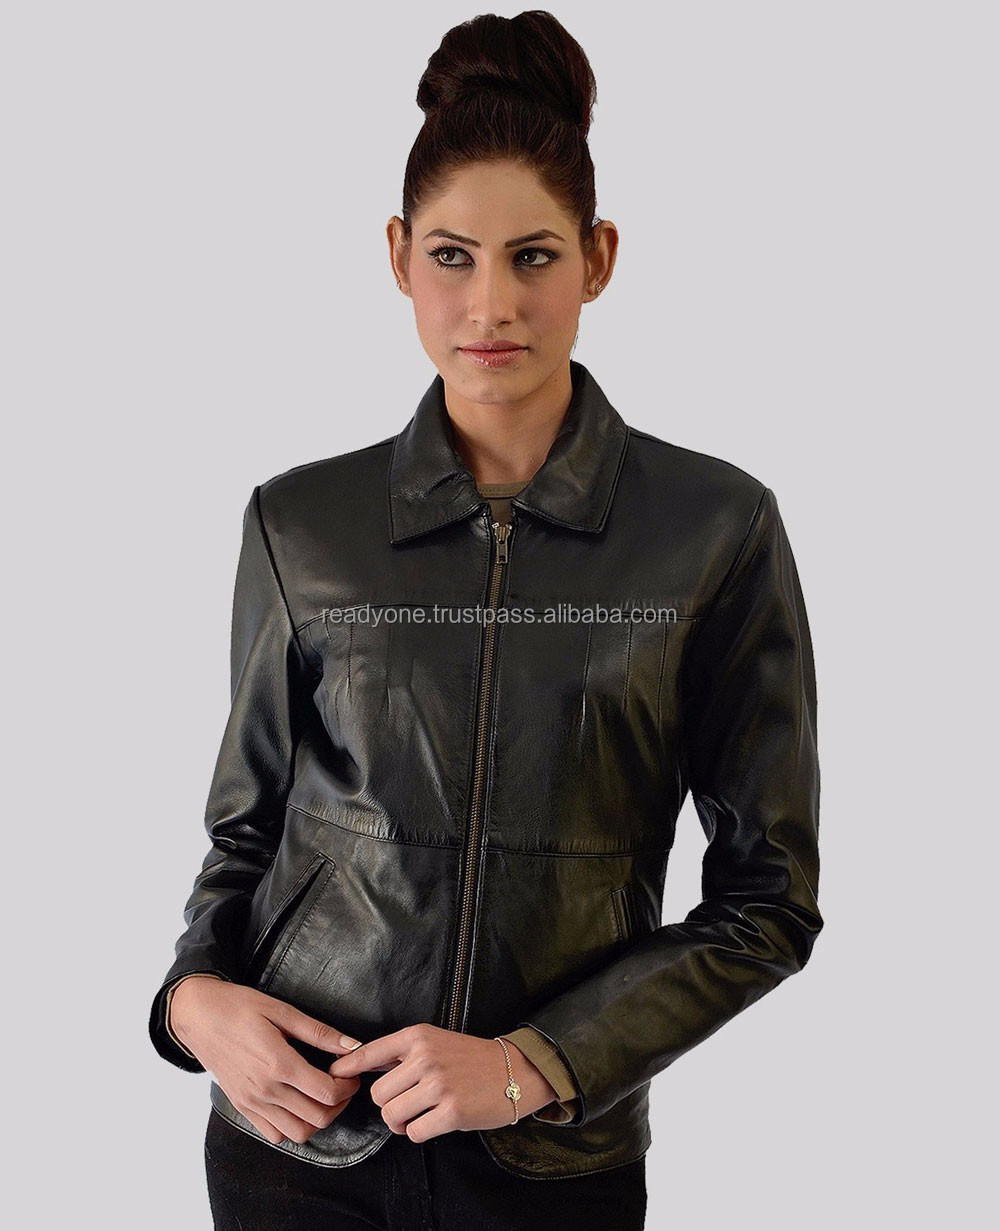 Factory Waterproof Custom Classic Leather Motorcycle Jackets